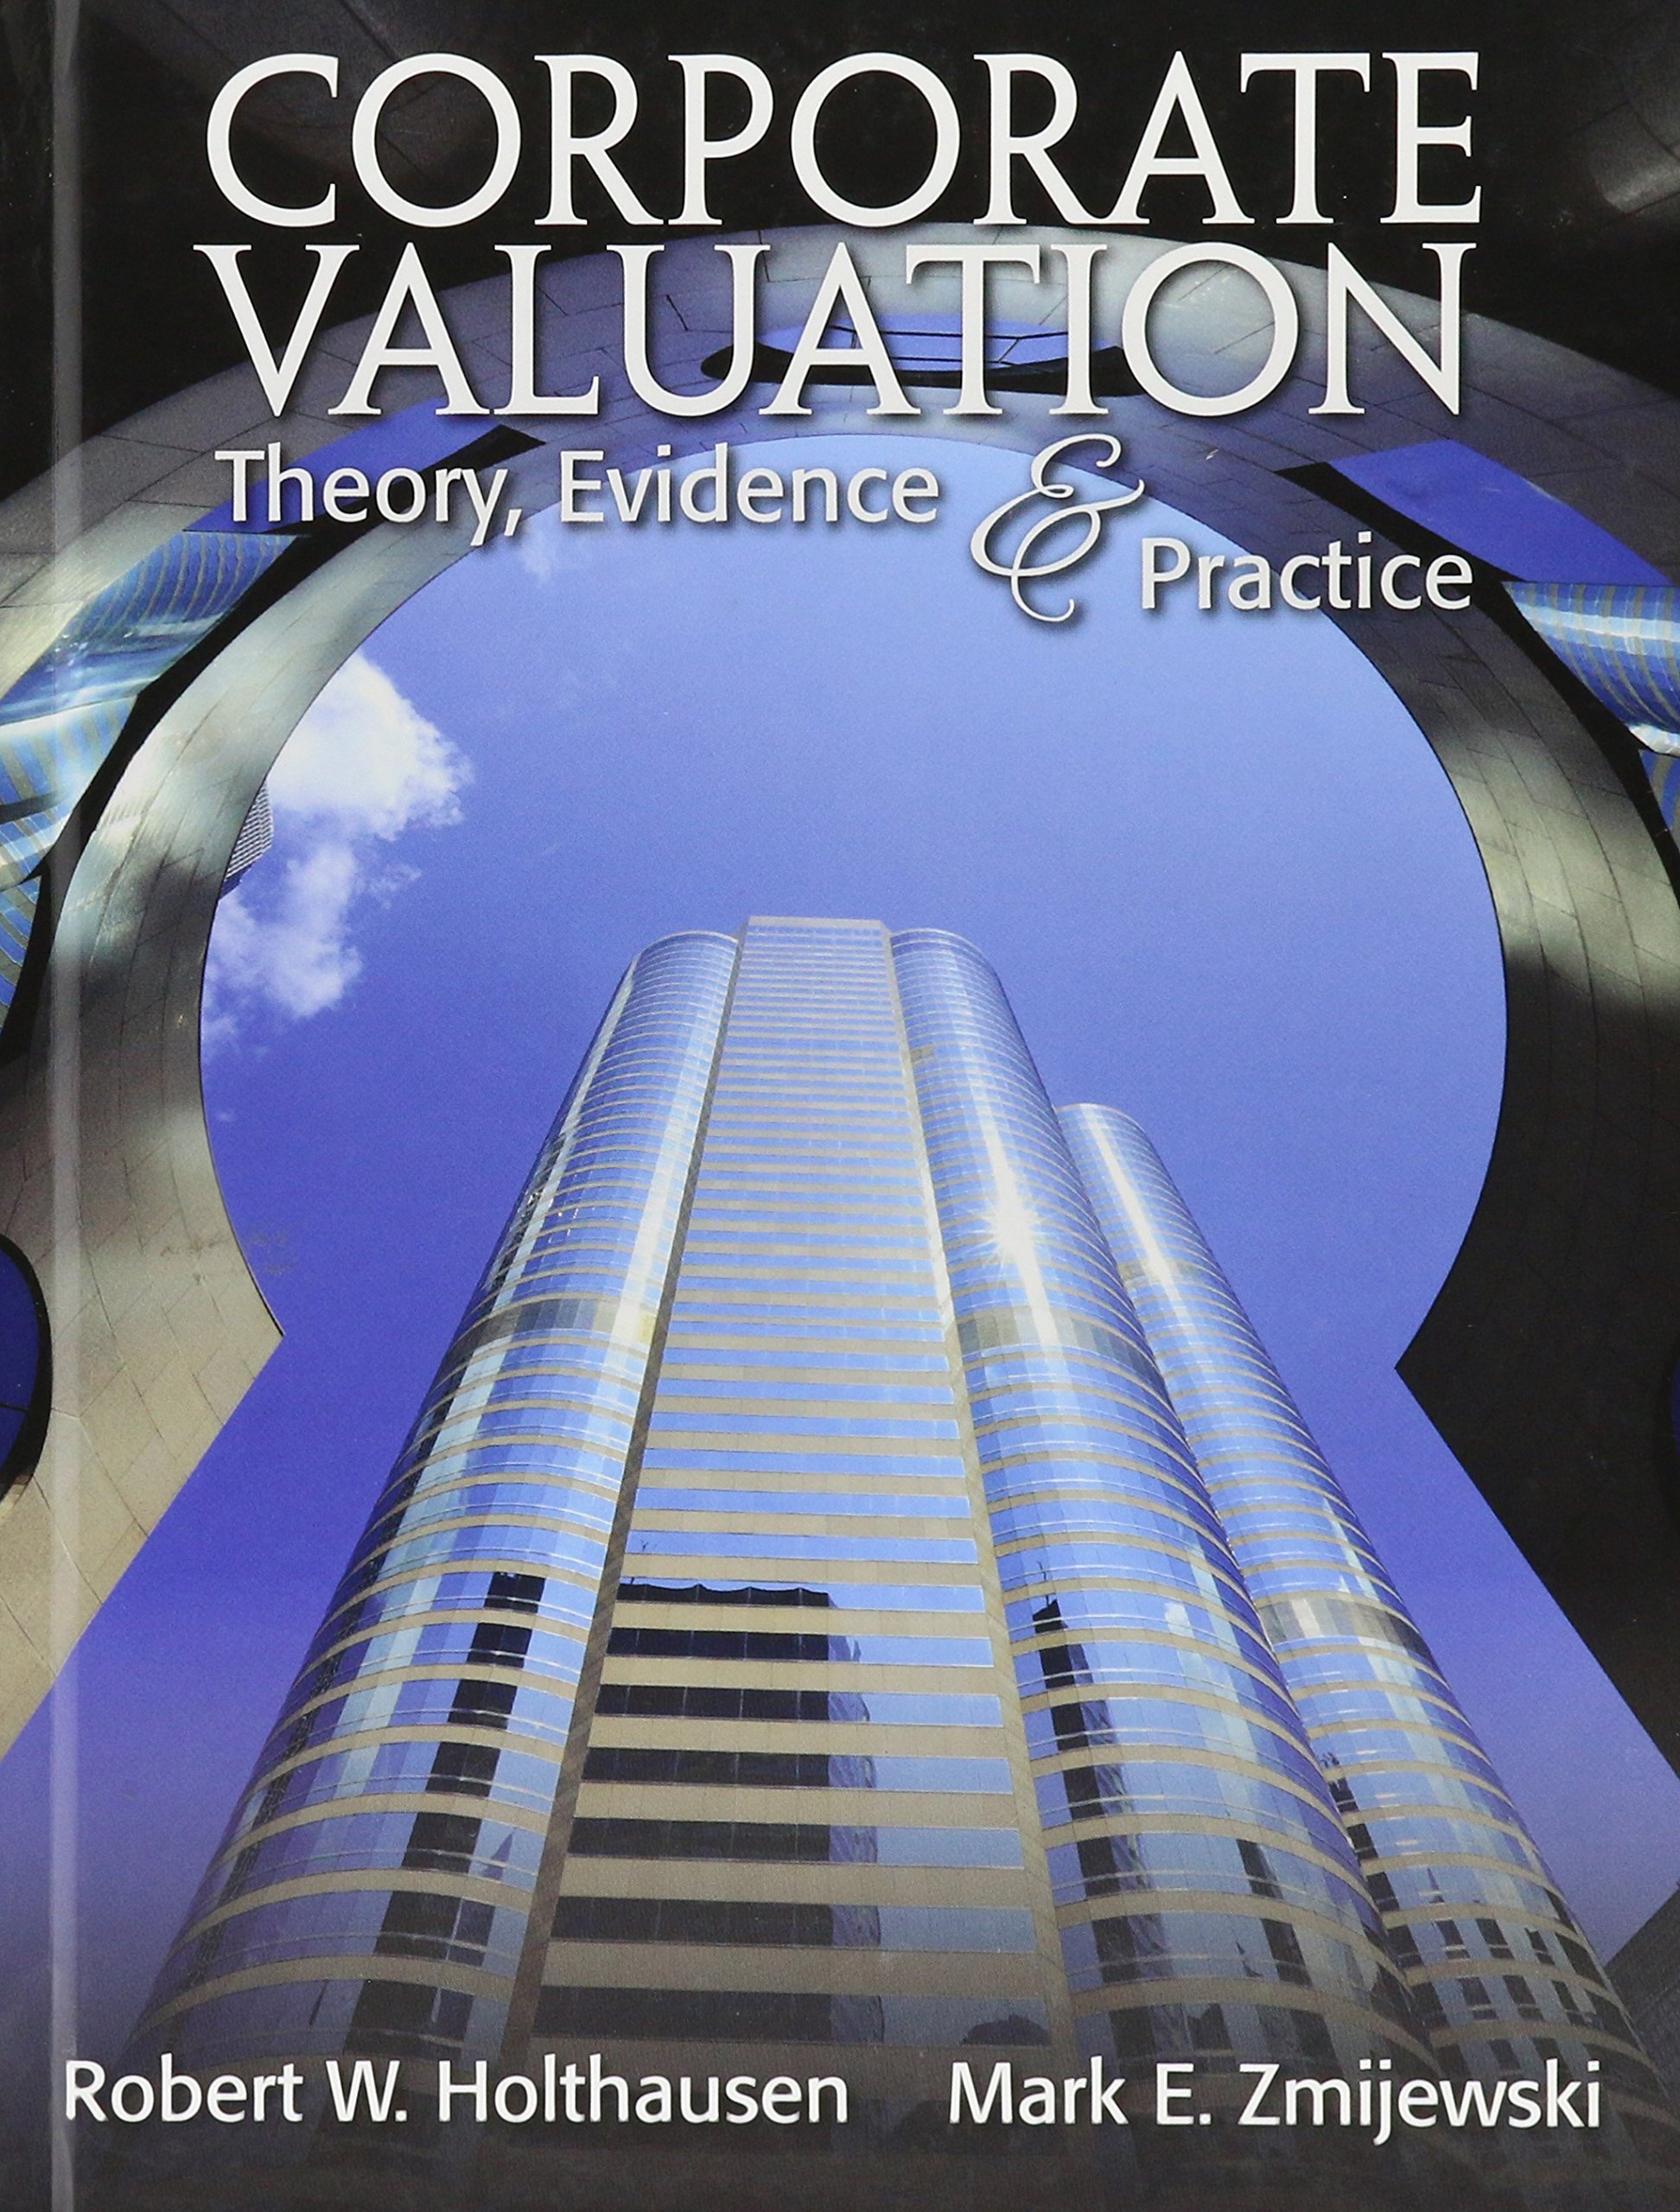 case studies in finance bruner solution manual Contact us to acquire the test bank and/or solution manual email: atfalo2(at)yahoo(dot)com skype: atfalo2.